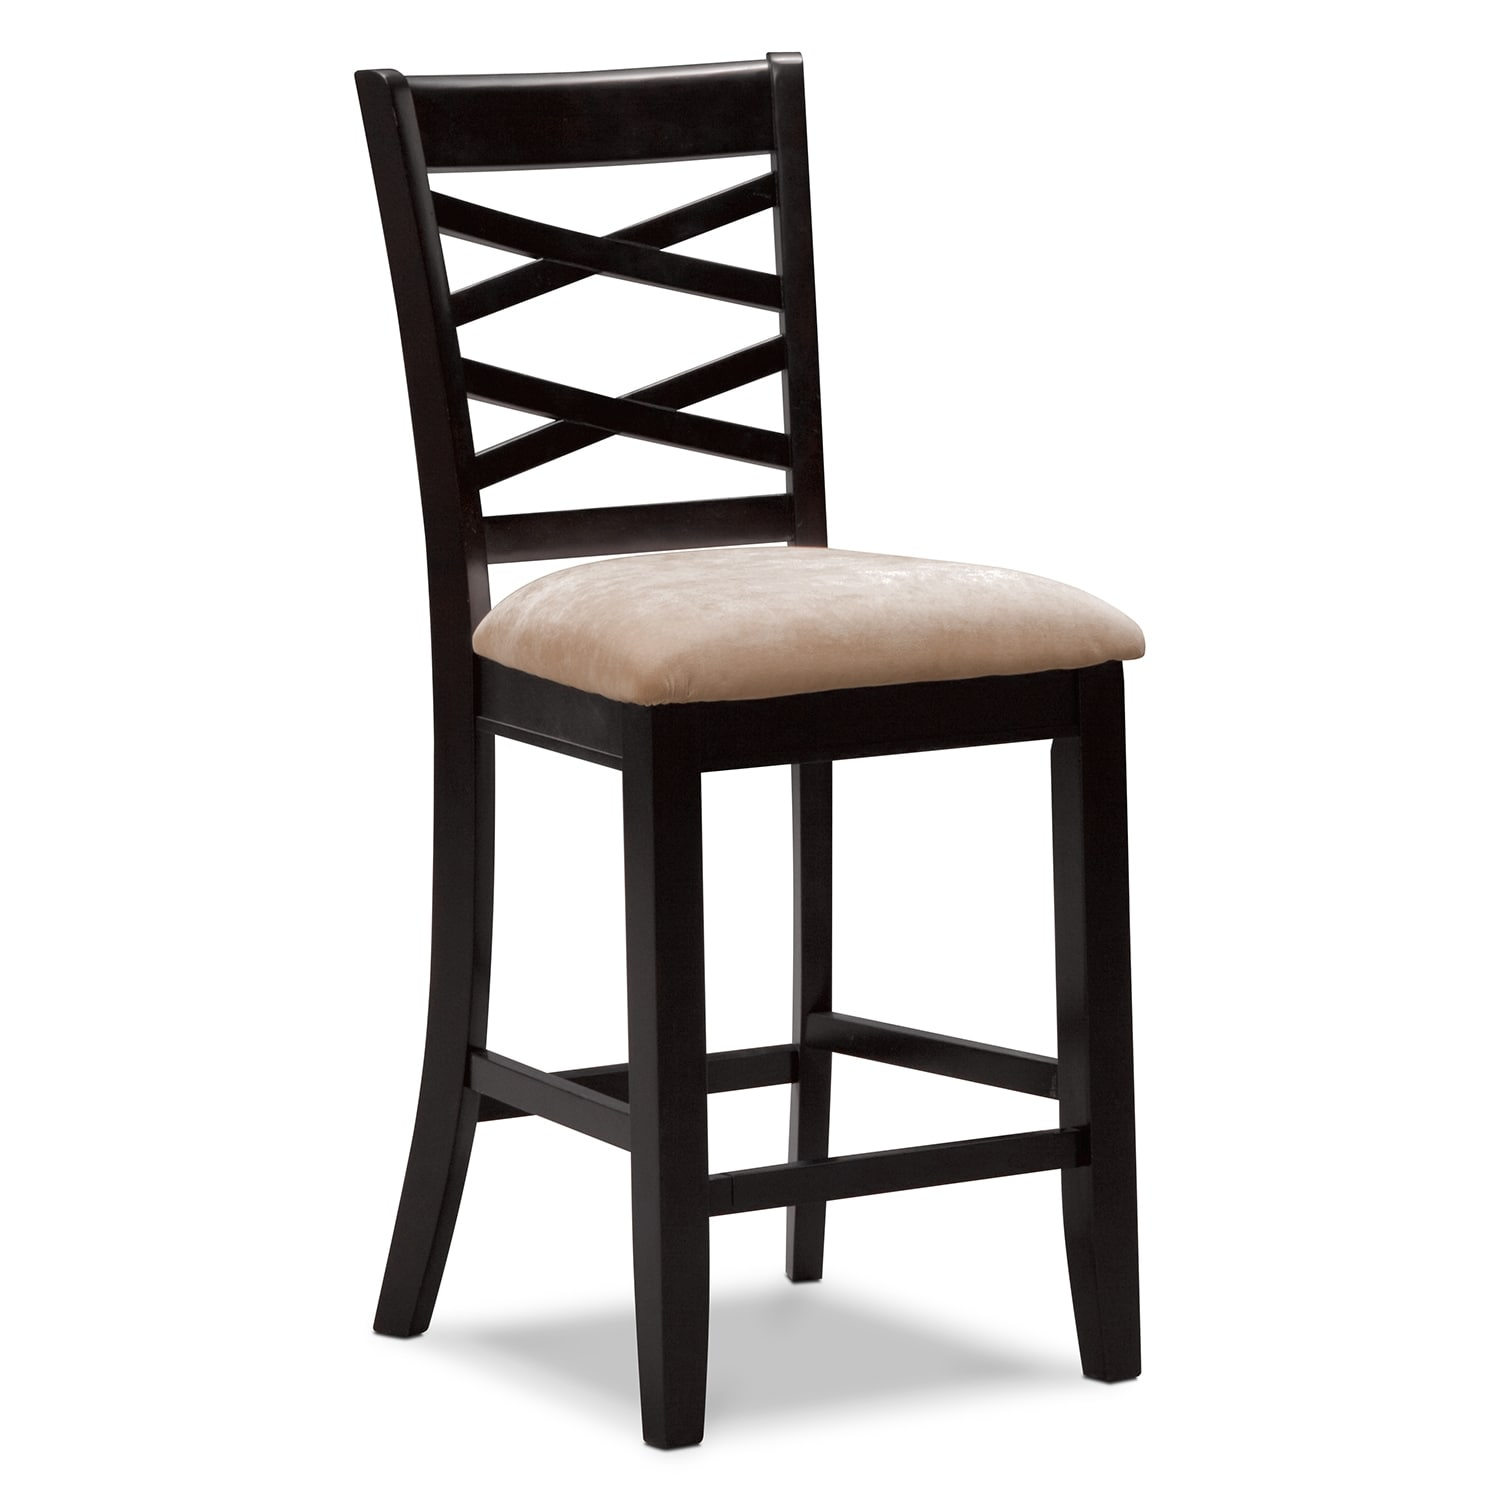 Davis counter height stool espresso Counter seating